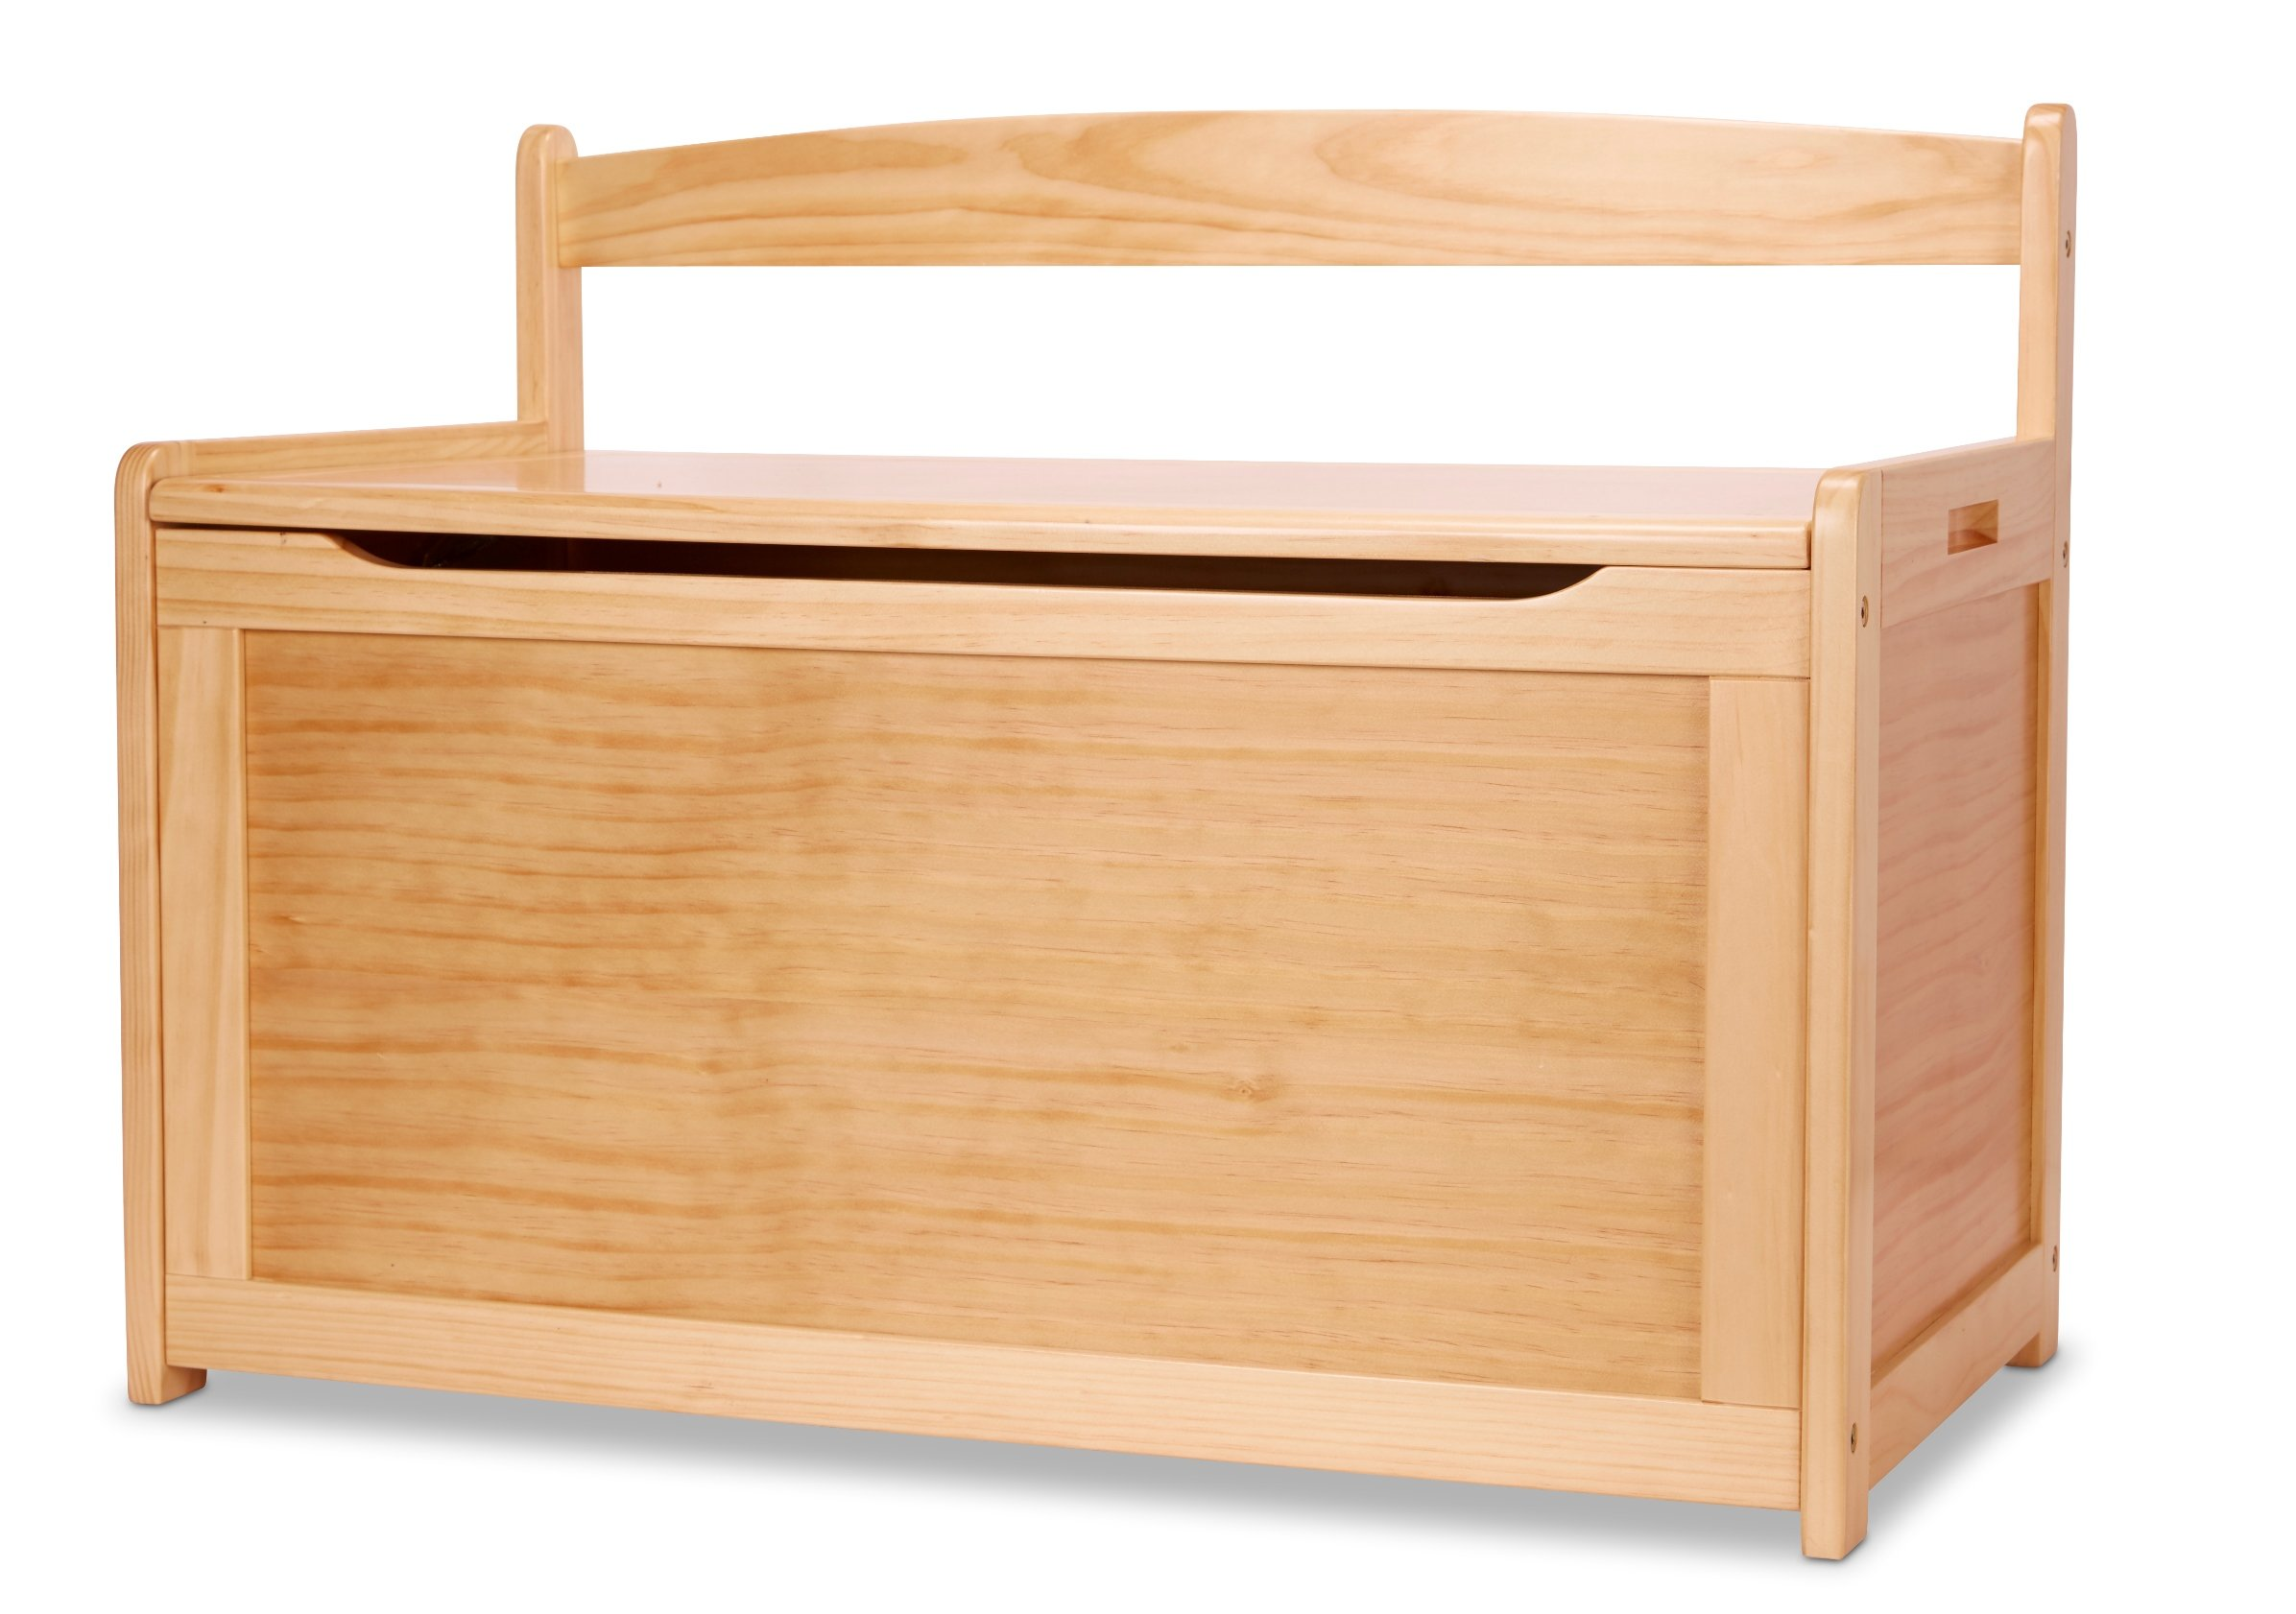 Melissa & Doug Toy Chest - Wood Grain Children's Furniture